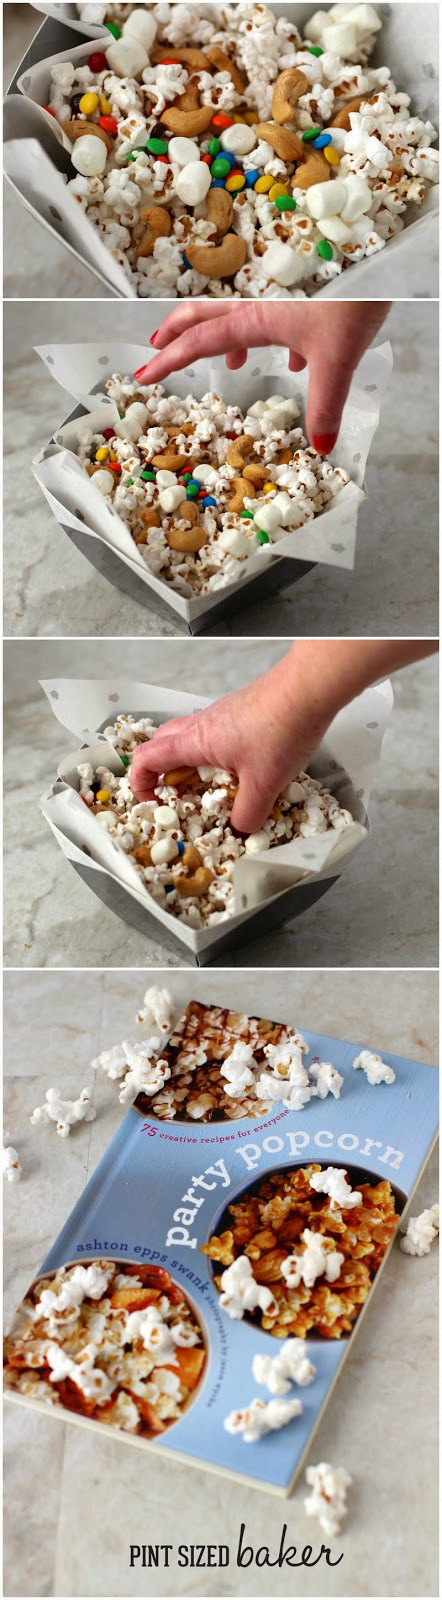 Dig in to a big bowl of popcorn! Sweet and Salty Popcorn for the win for your next snack attack!